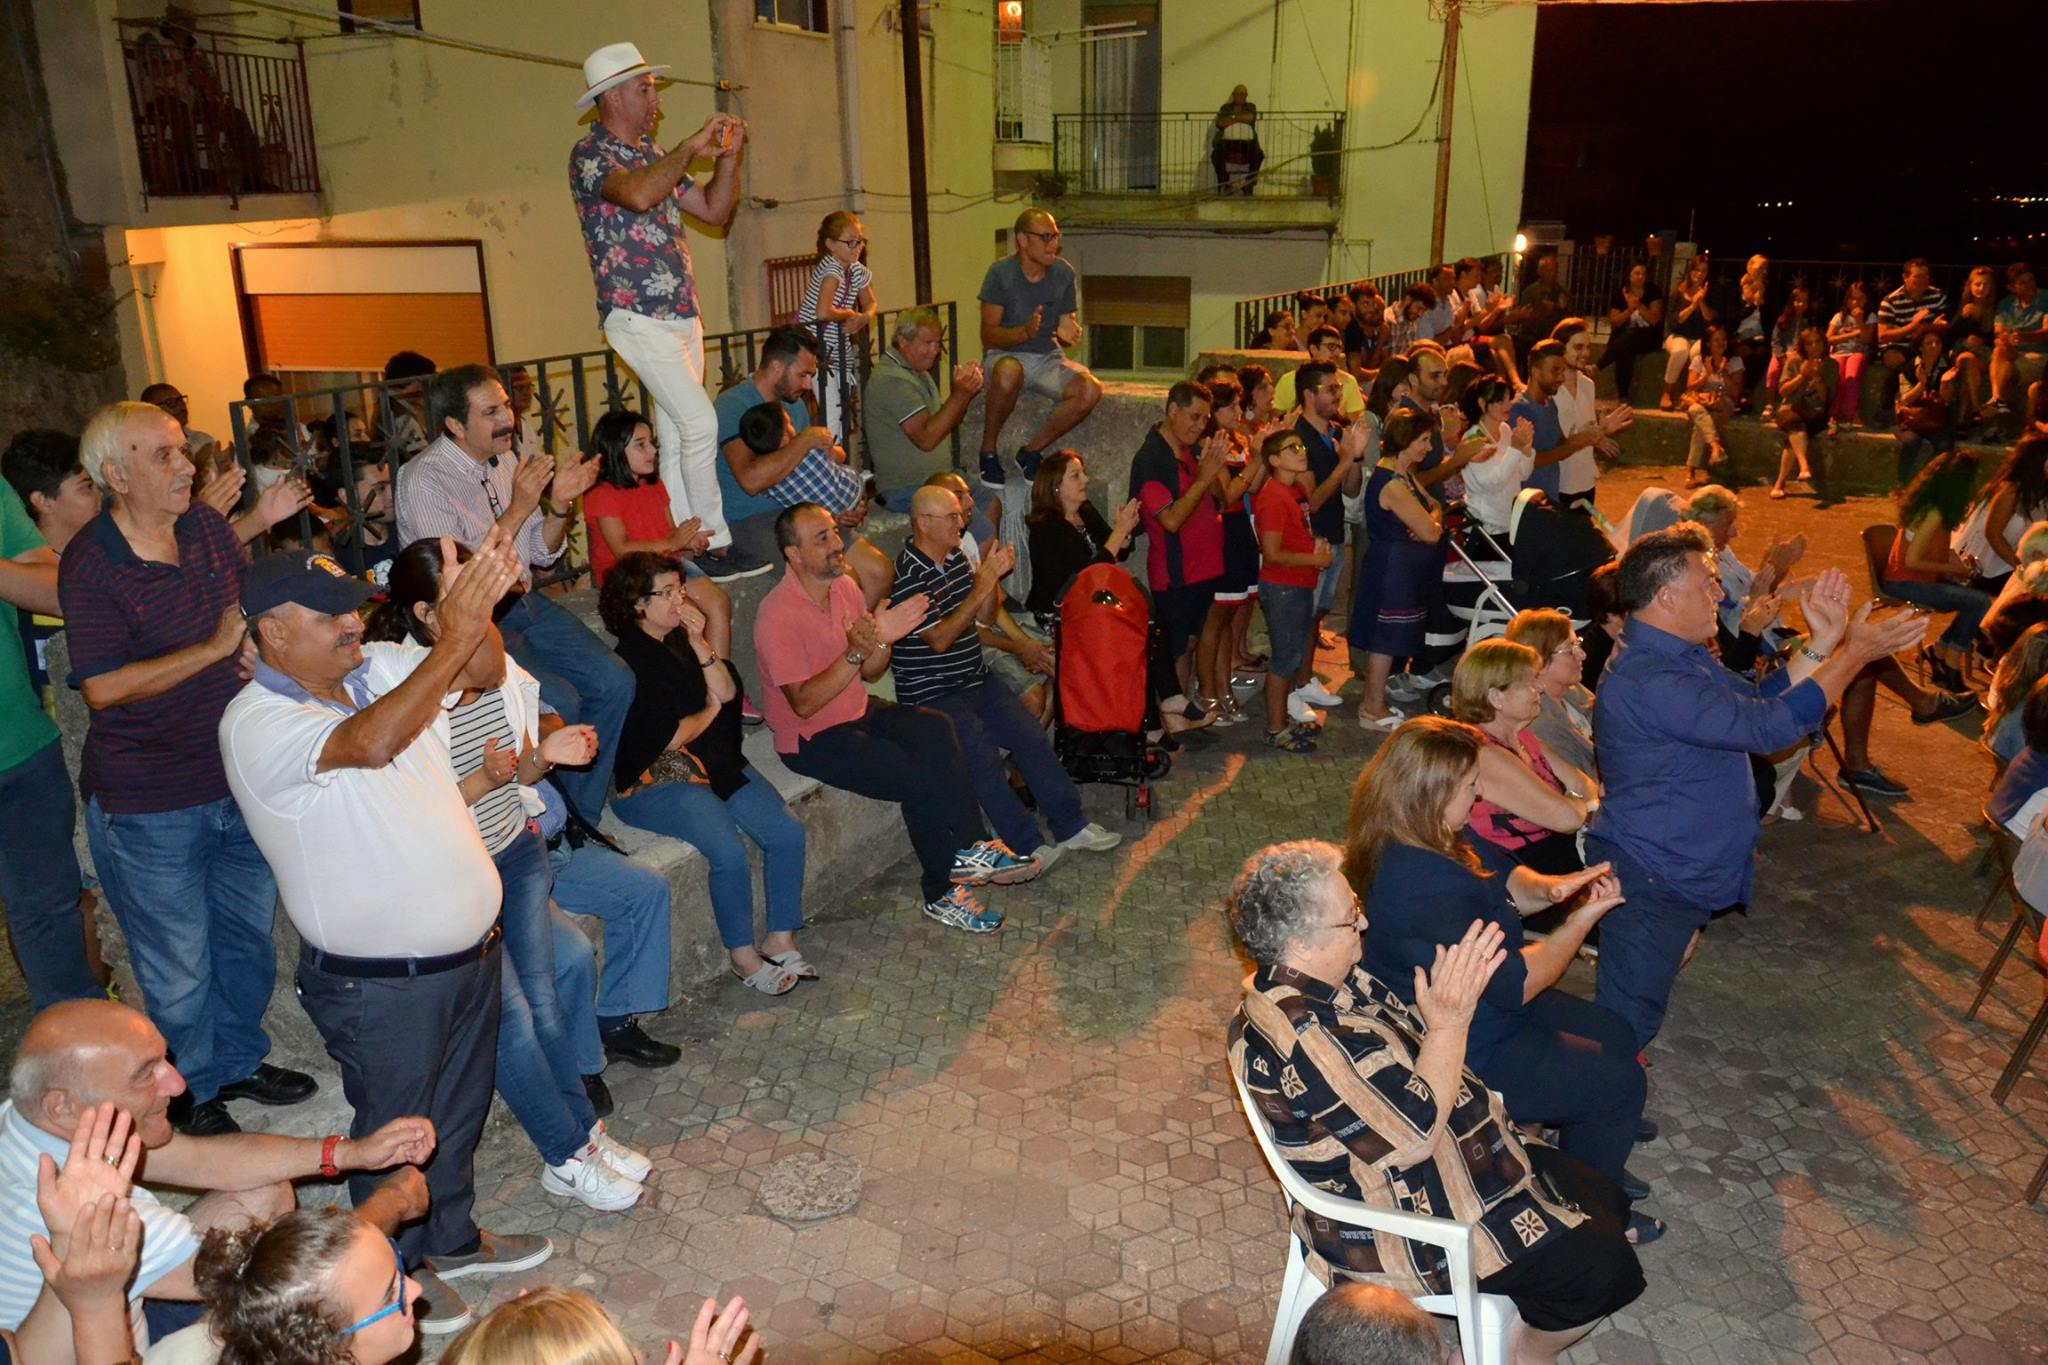 The crowd applauds the opening night performance of La Storia di Colapesce